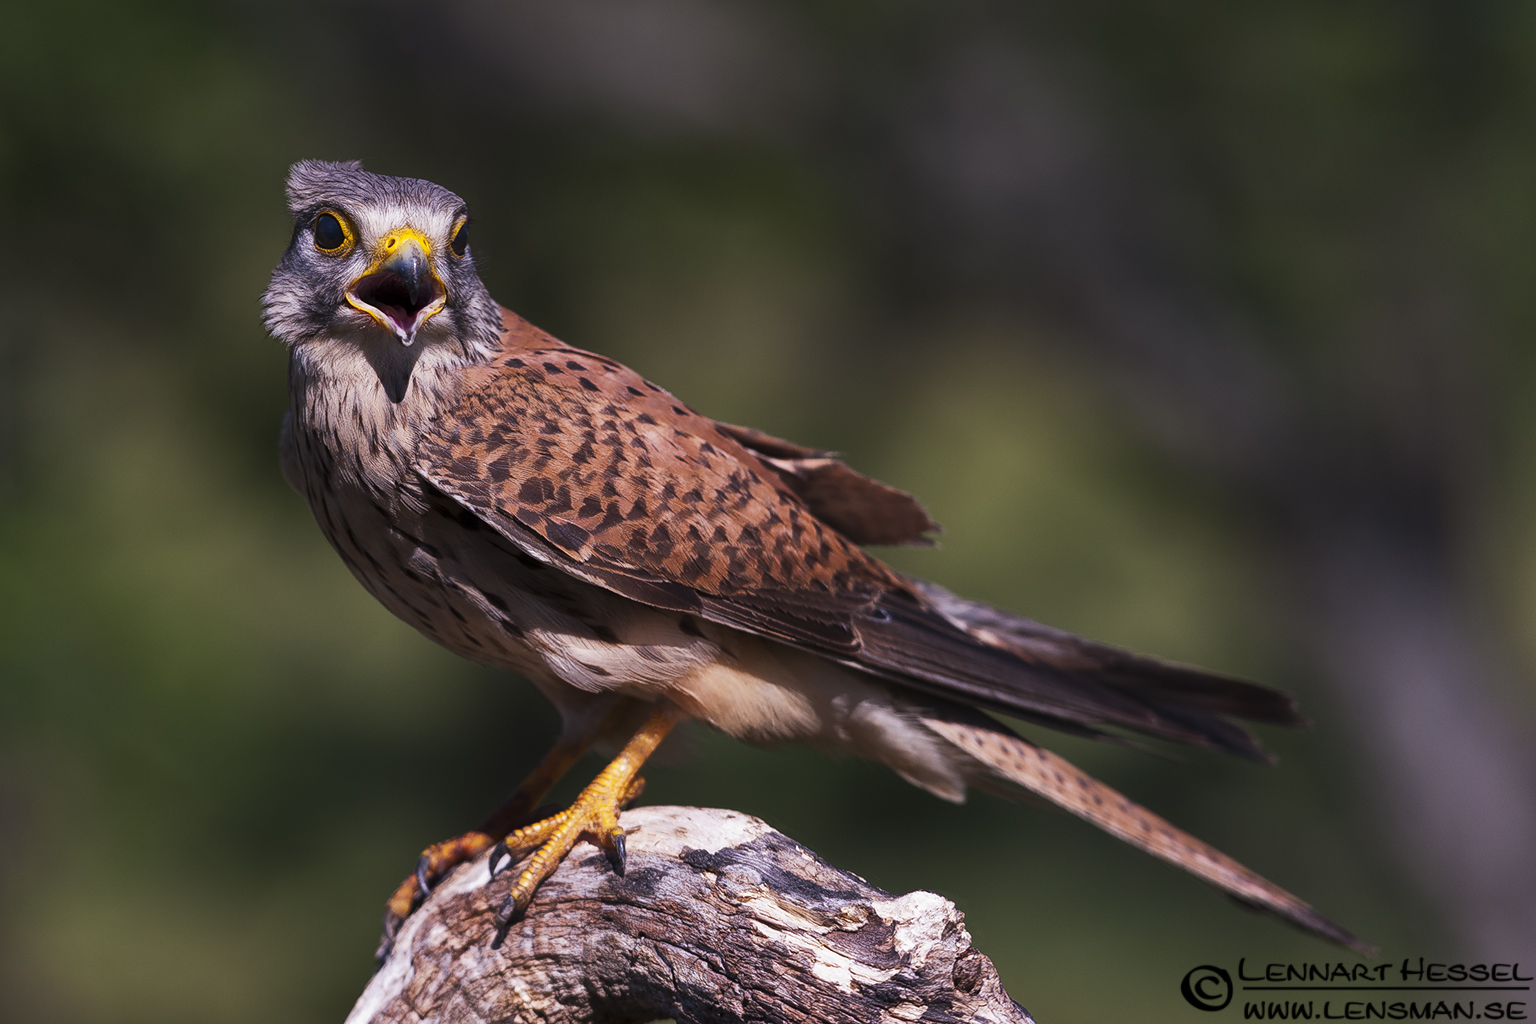 Common Kestrel in Hungary, wild bird